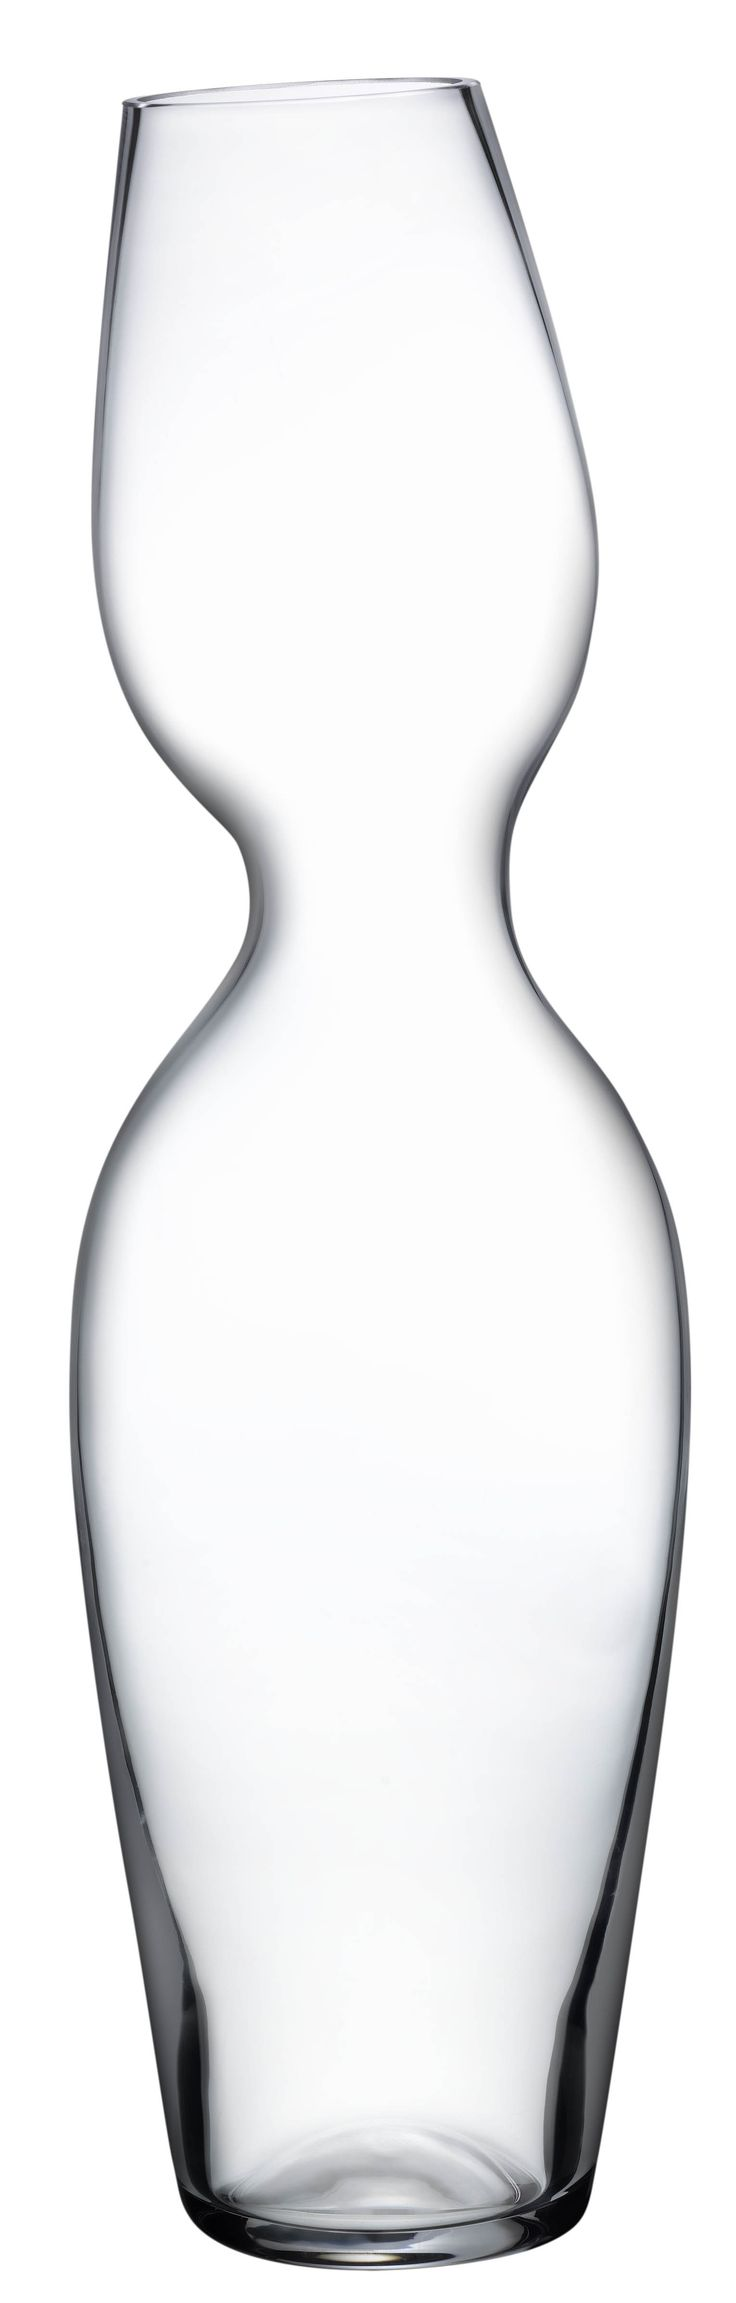 Jug - Red or White Collection